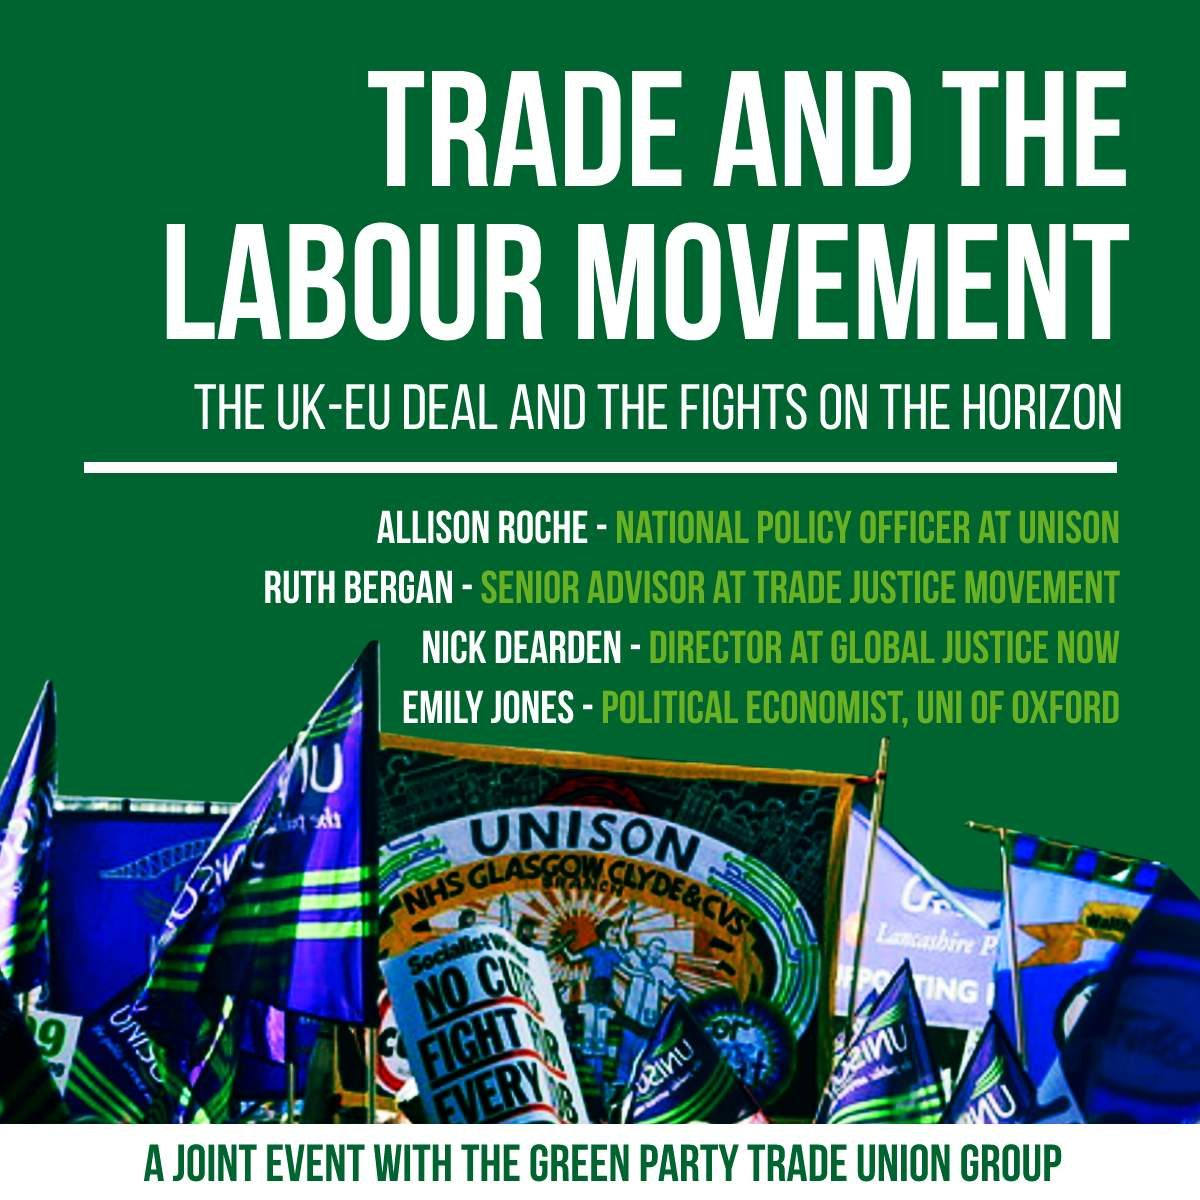 Trade & The Labour Movement: The UK-EU deal and the fights on the horizon